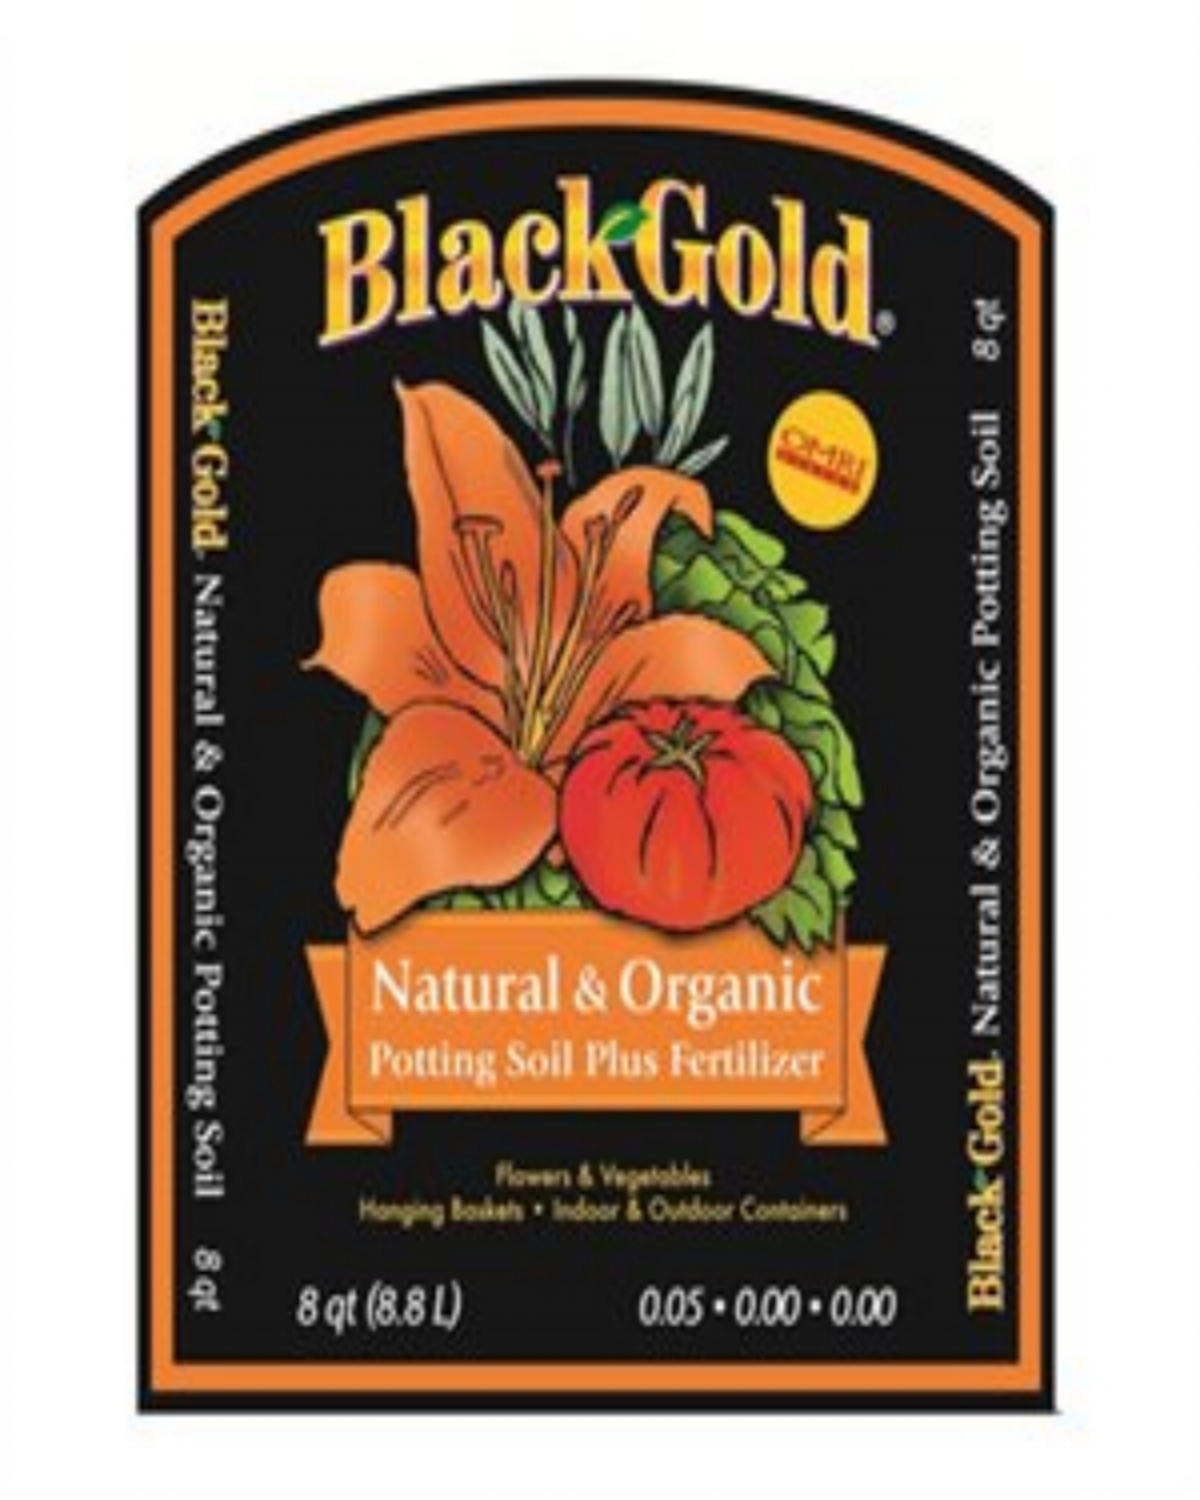 BlackGold Natural & Organic Potting Soil Plus Fertilizer